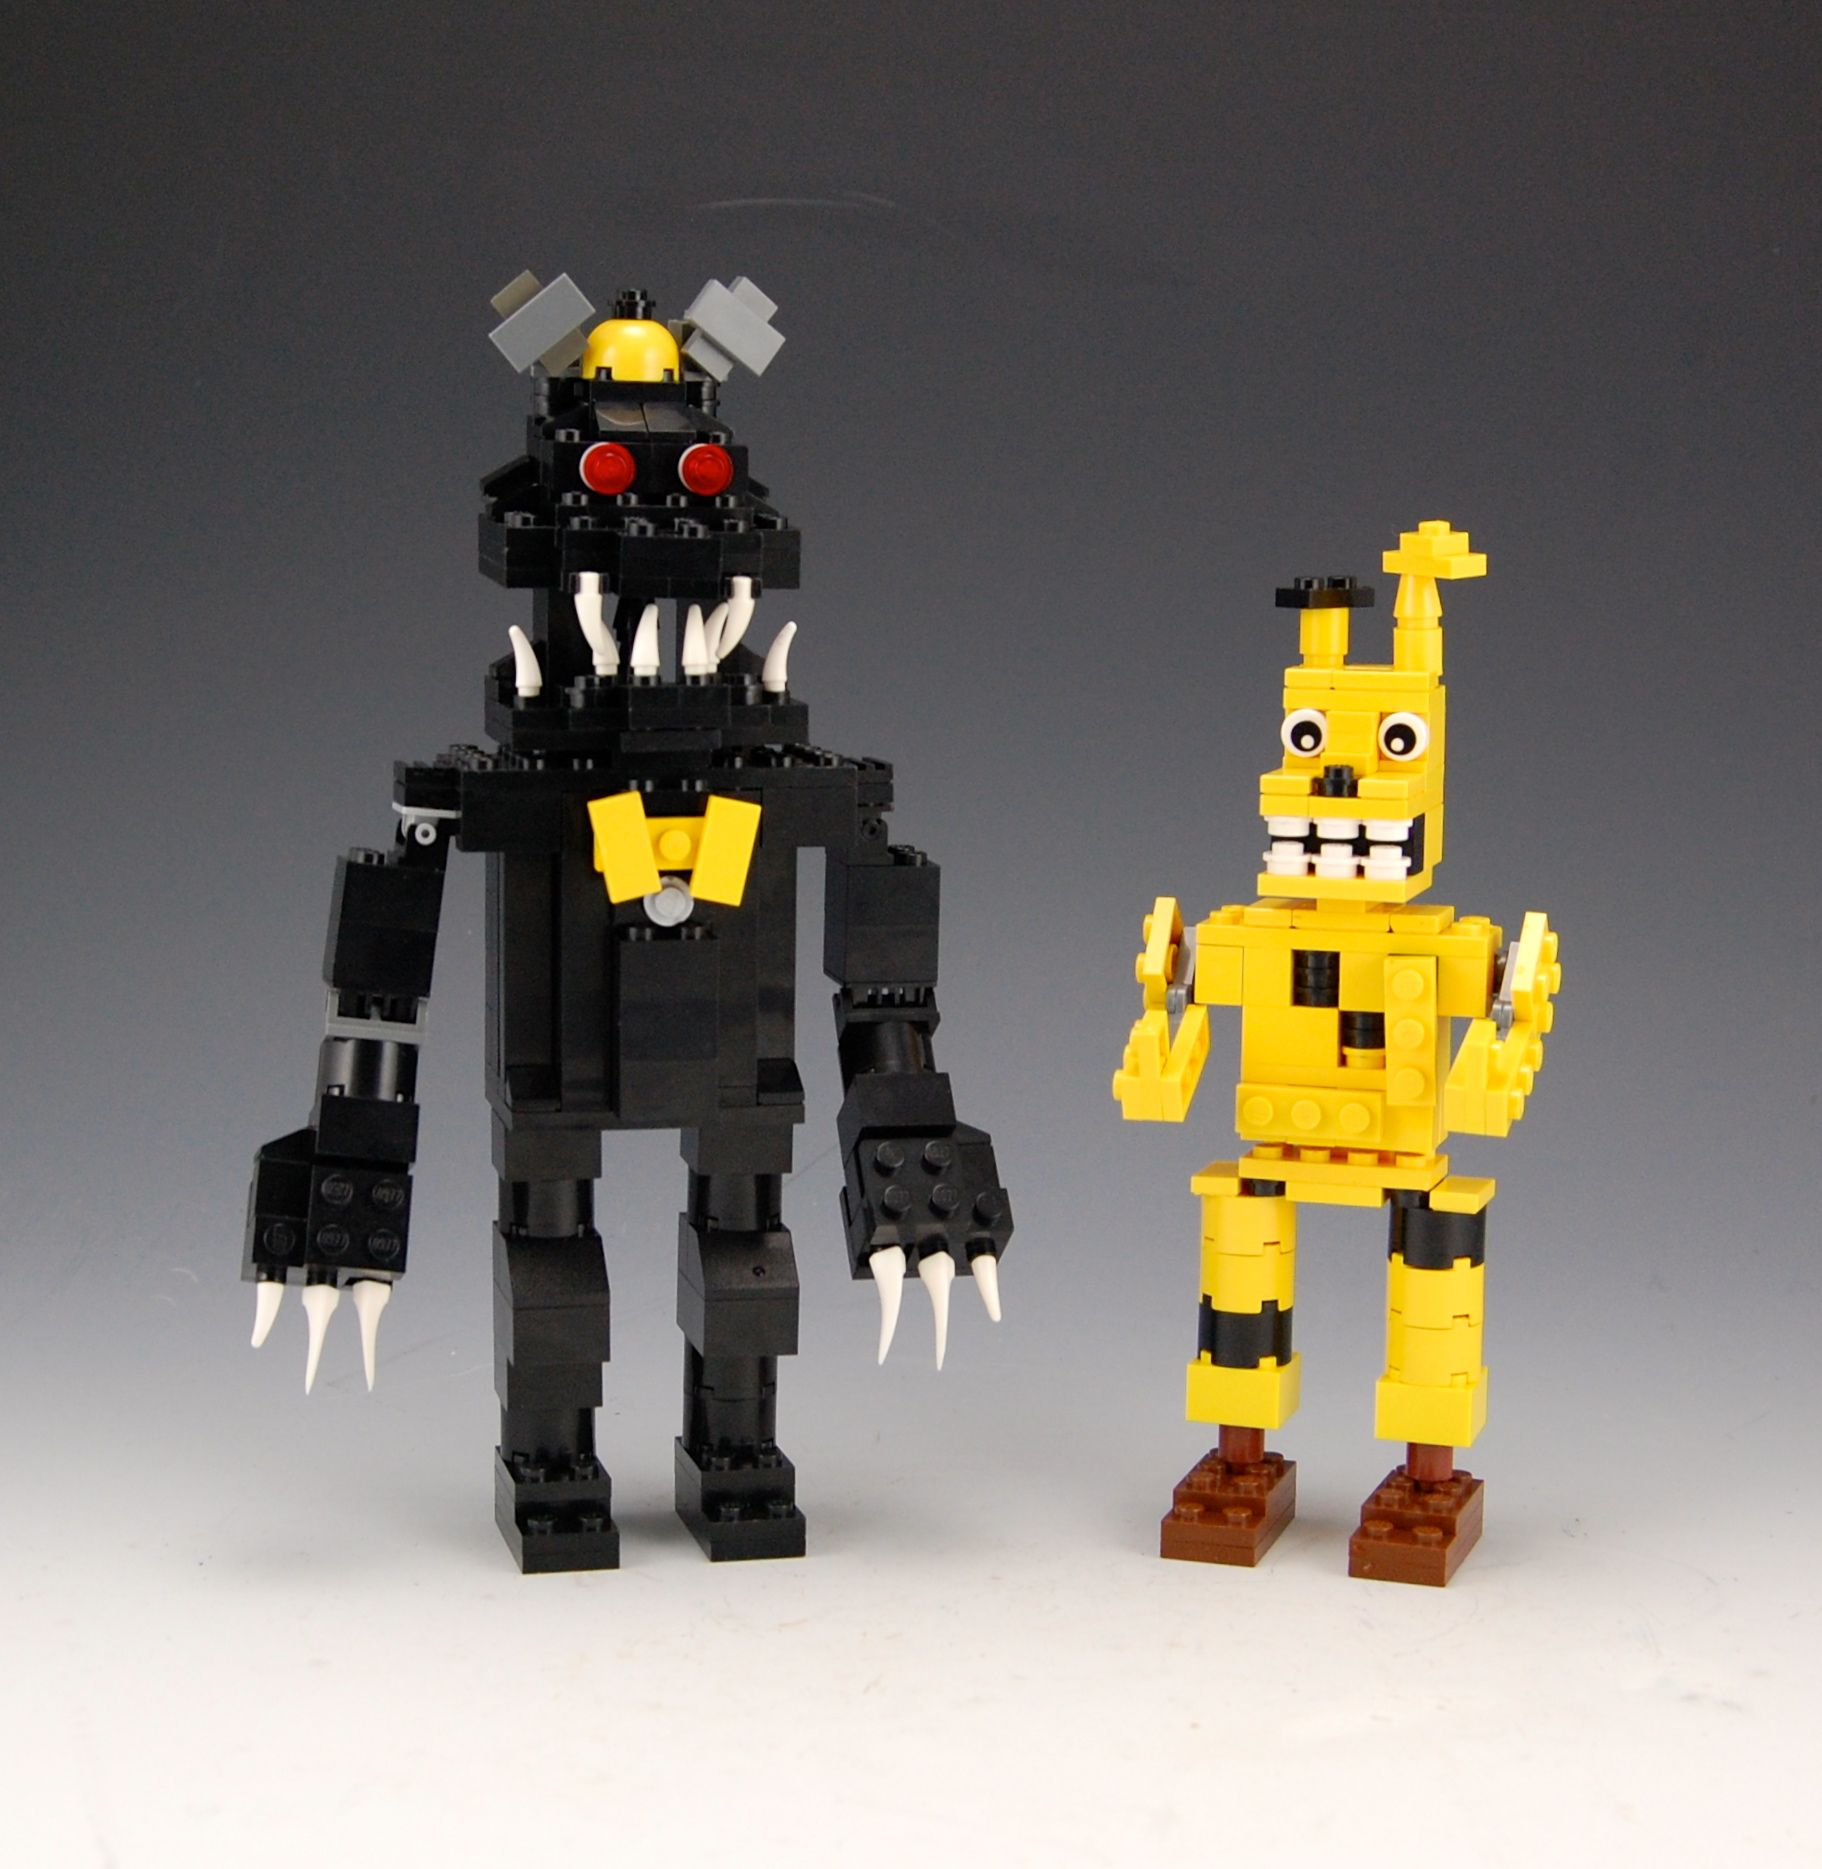 More five nights at freddy s construction sets coming soon - Lego Five Nights At Freddy S 4 Nightmare And Spring Trap By Brickbum